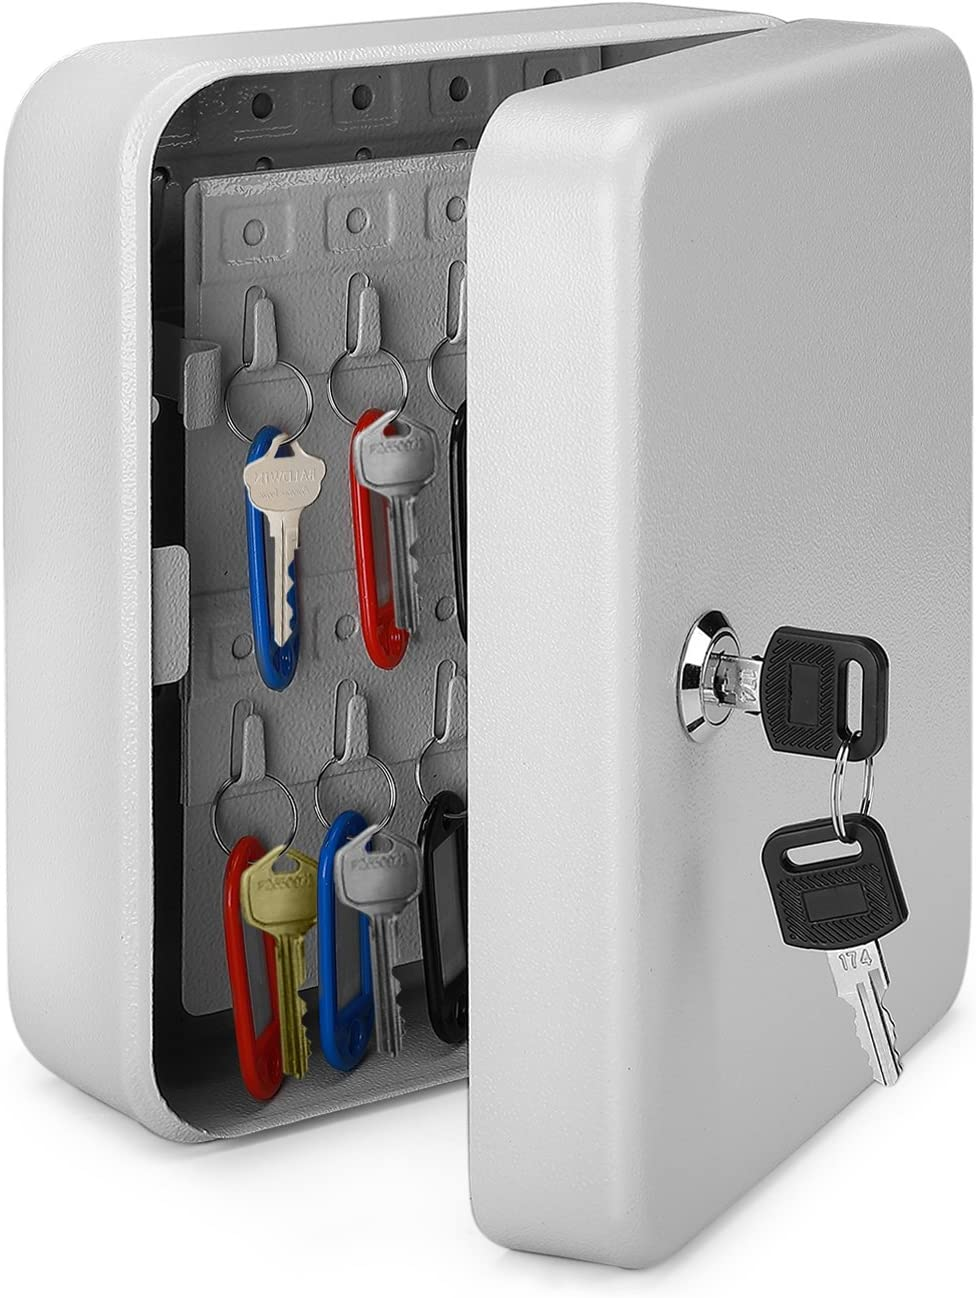 Flexzion Key Cabinet Steel Lock Box with 40 Capacity Colored Key Tags & Hooks - Wall Mounted Safe Organizer, Security Storage Lock Box System for Homes, Hotels, Schools or Business (Gray)